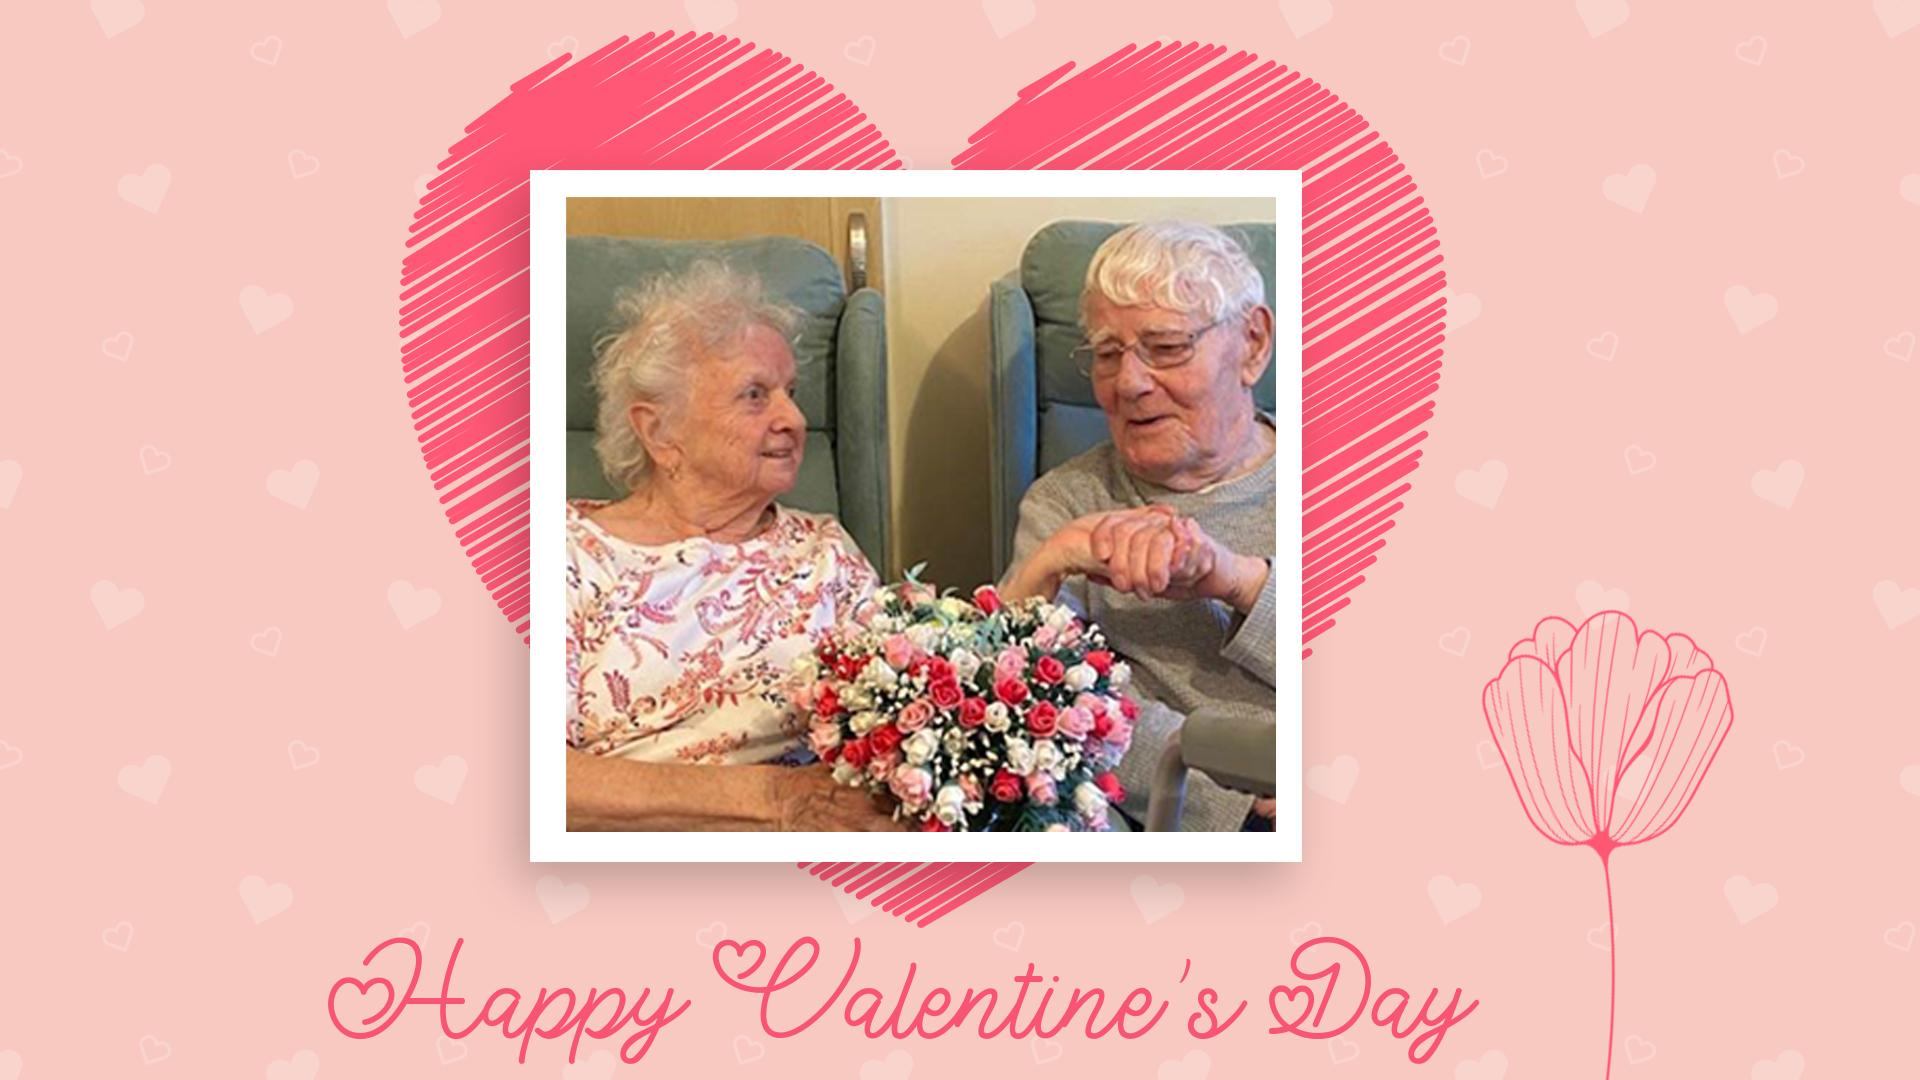 SId and Pat enjoy Valentine's Day